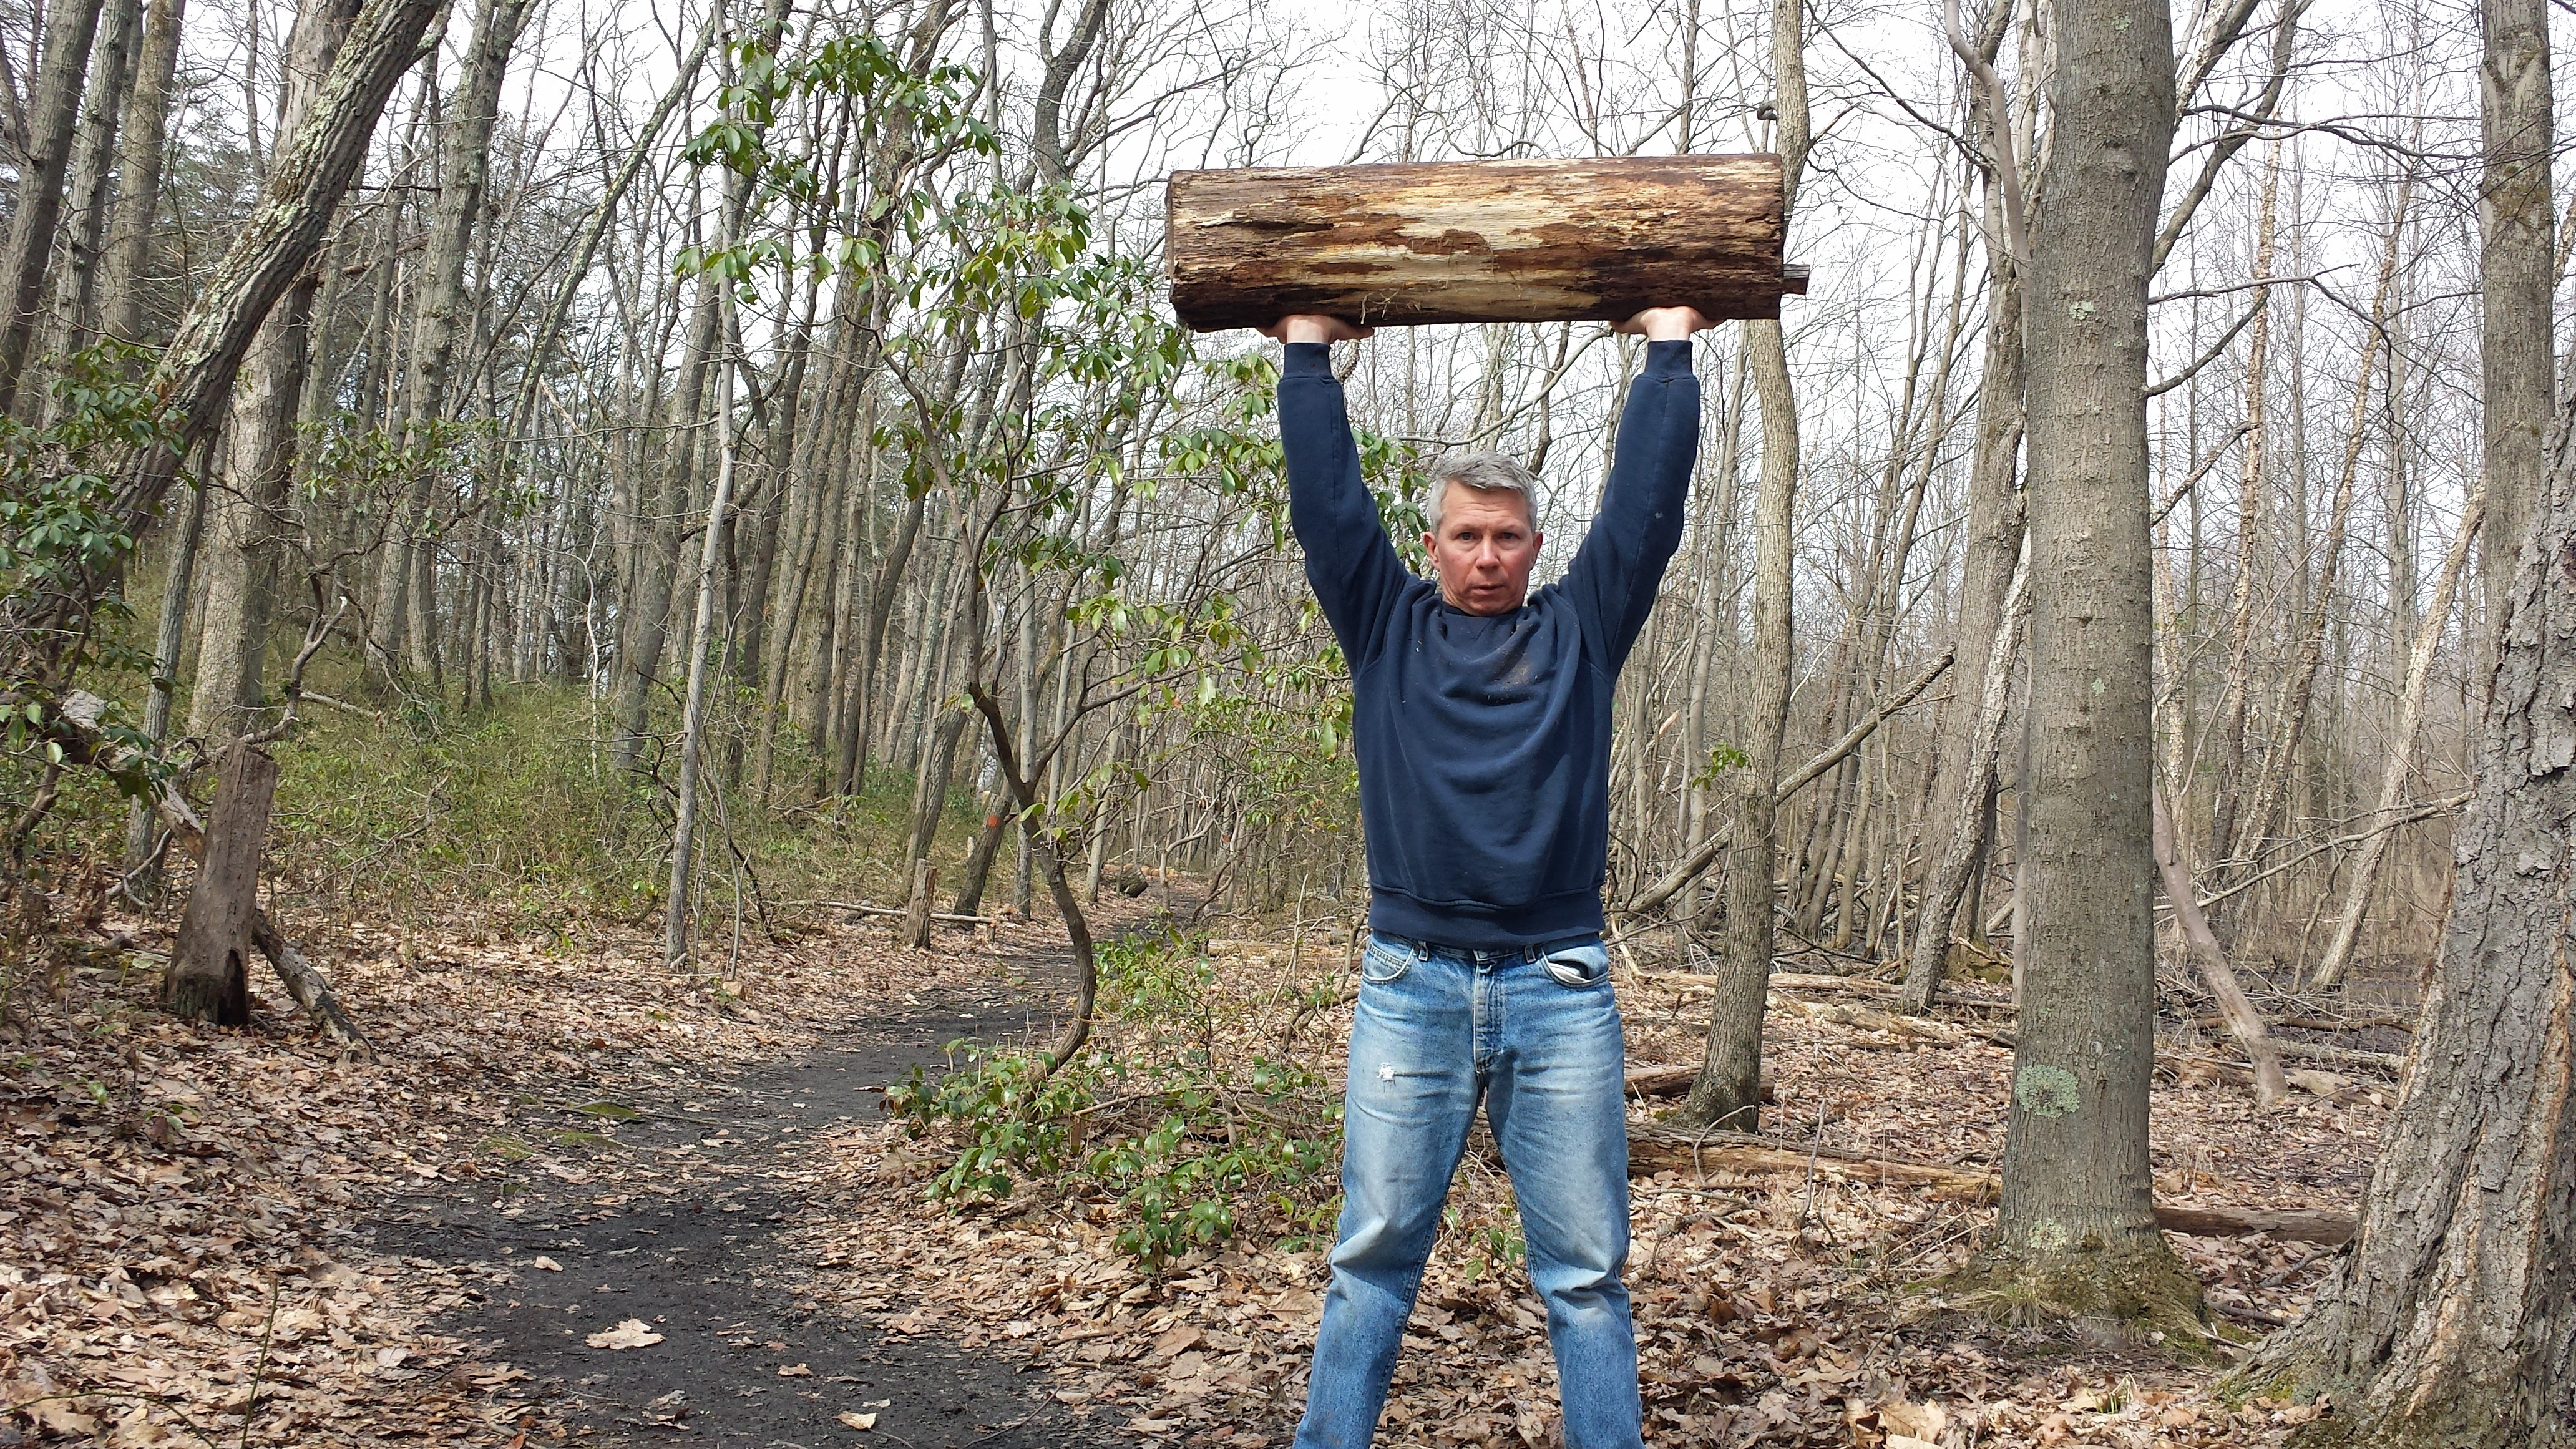 The common log is a great fitness tool!